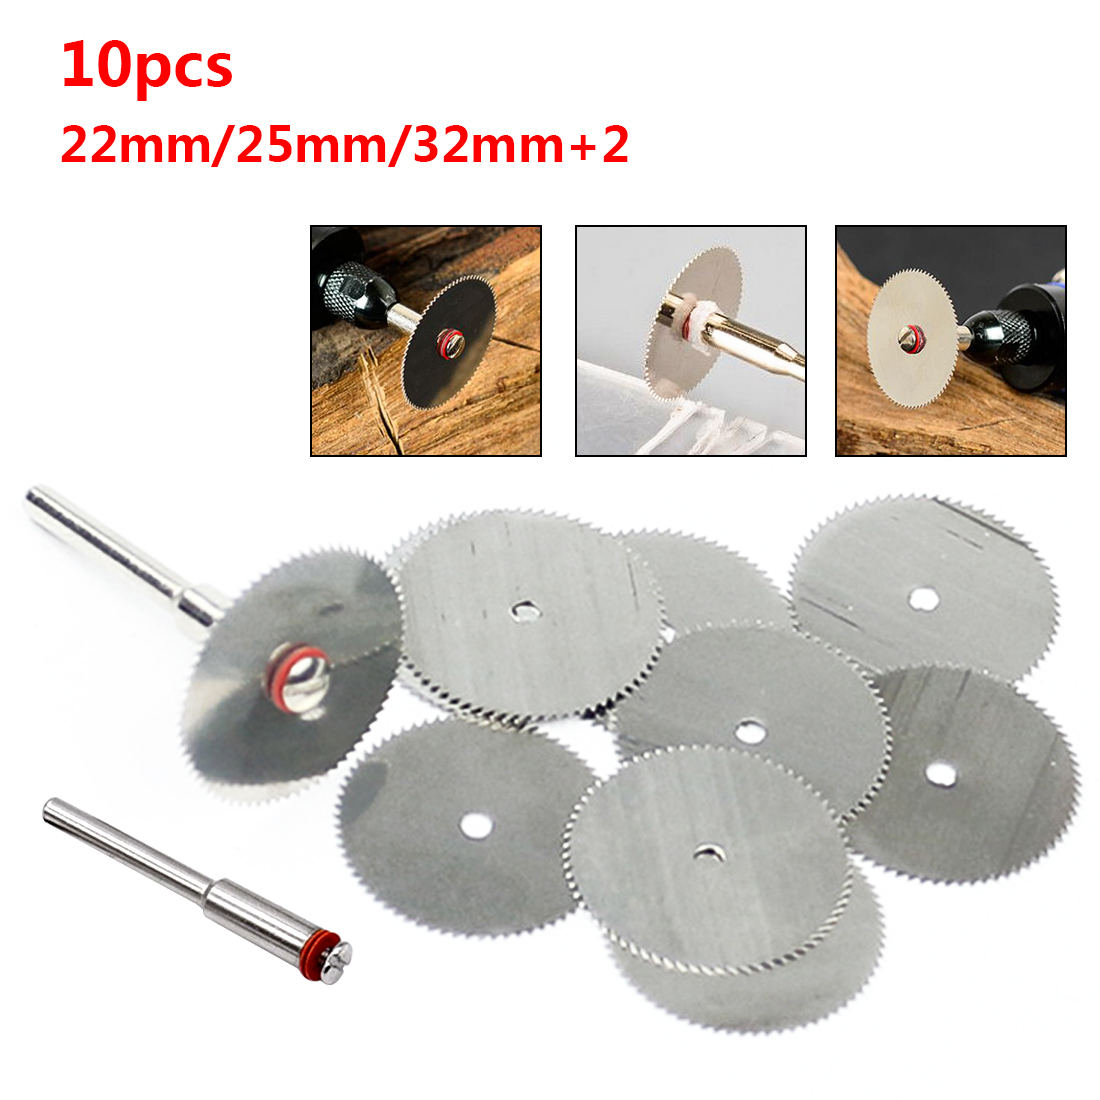 10pcs 22/25/32mm Abrasive Tool Reinforced Cut Off Wheel With 2pcs 3.17mm Mandrels Mini Drill Rotary Tool Cutting Disc